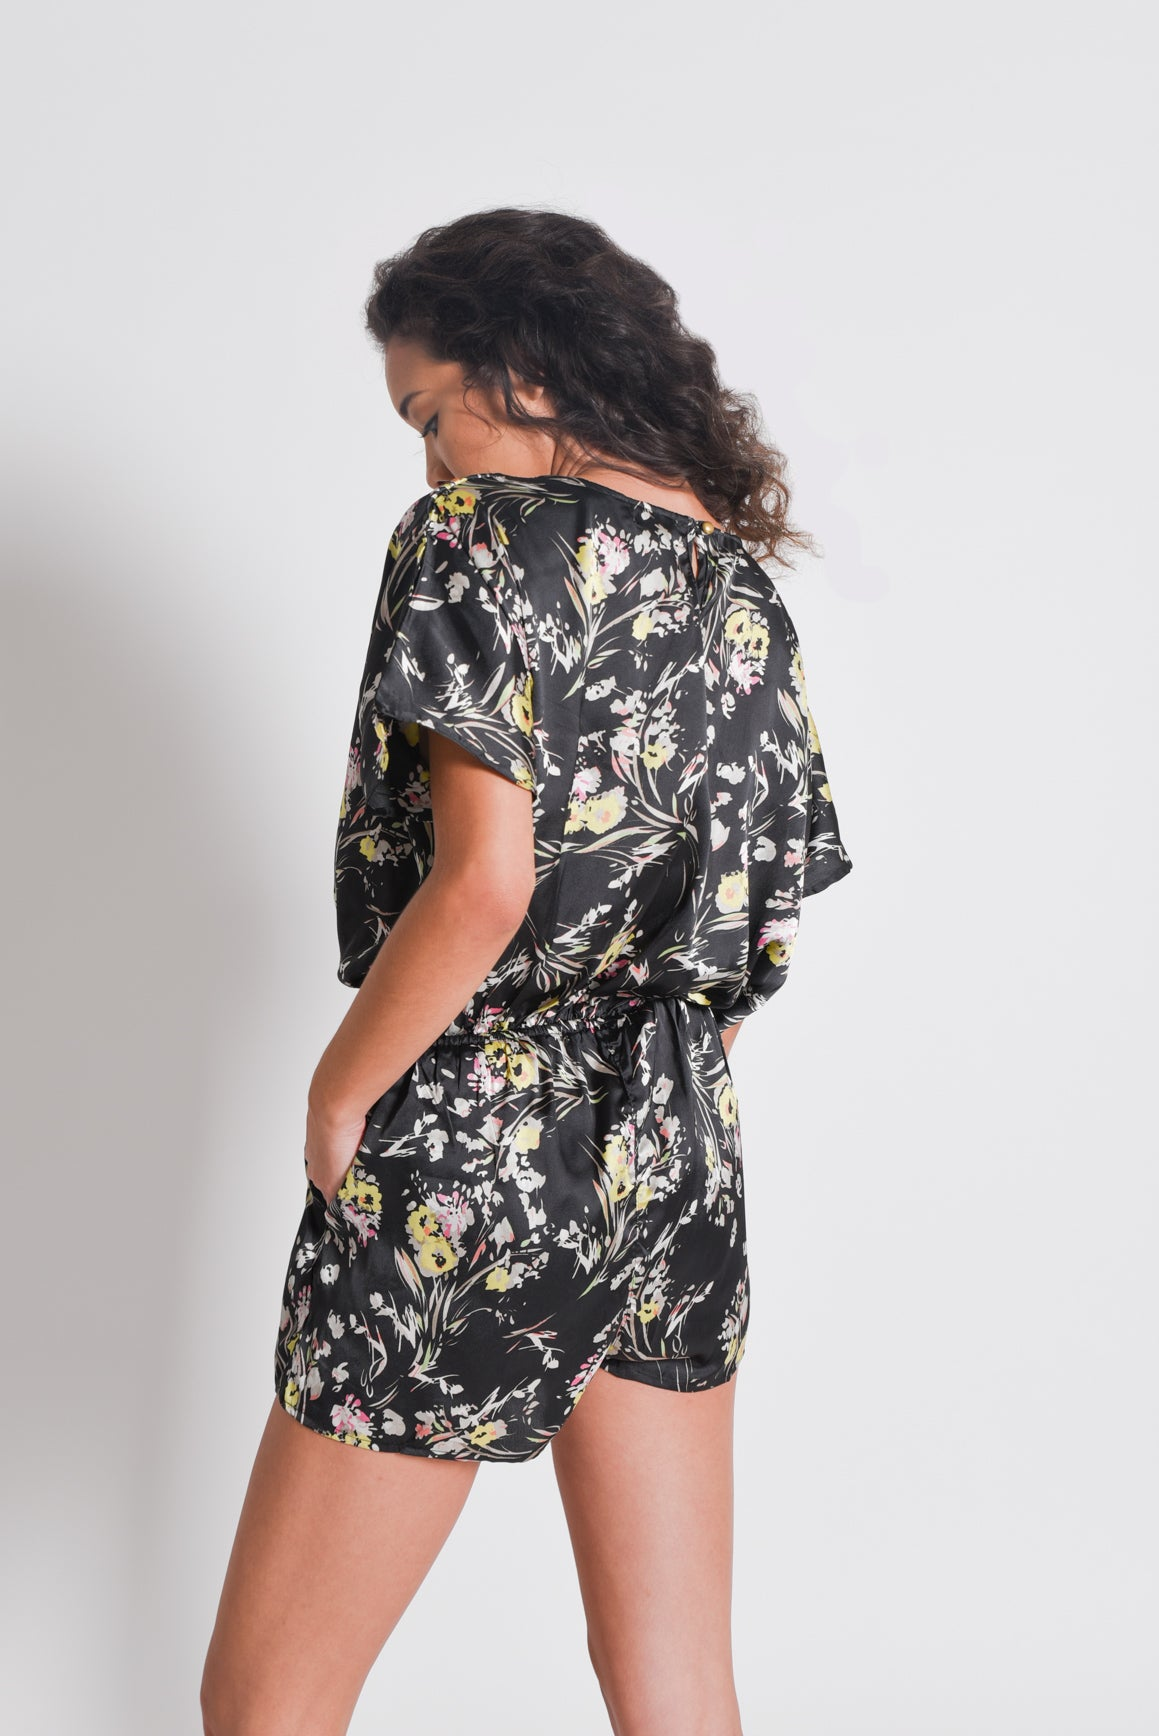 Shop Women's Black Floral Print Jumpsuit| Aanya